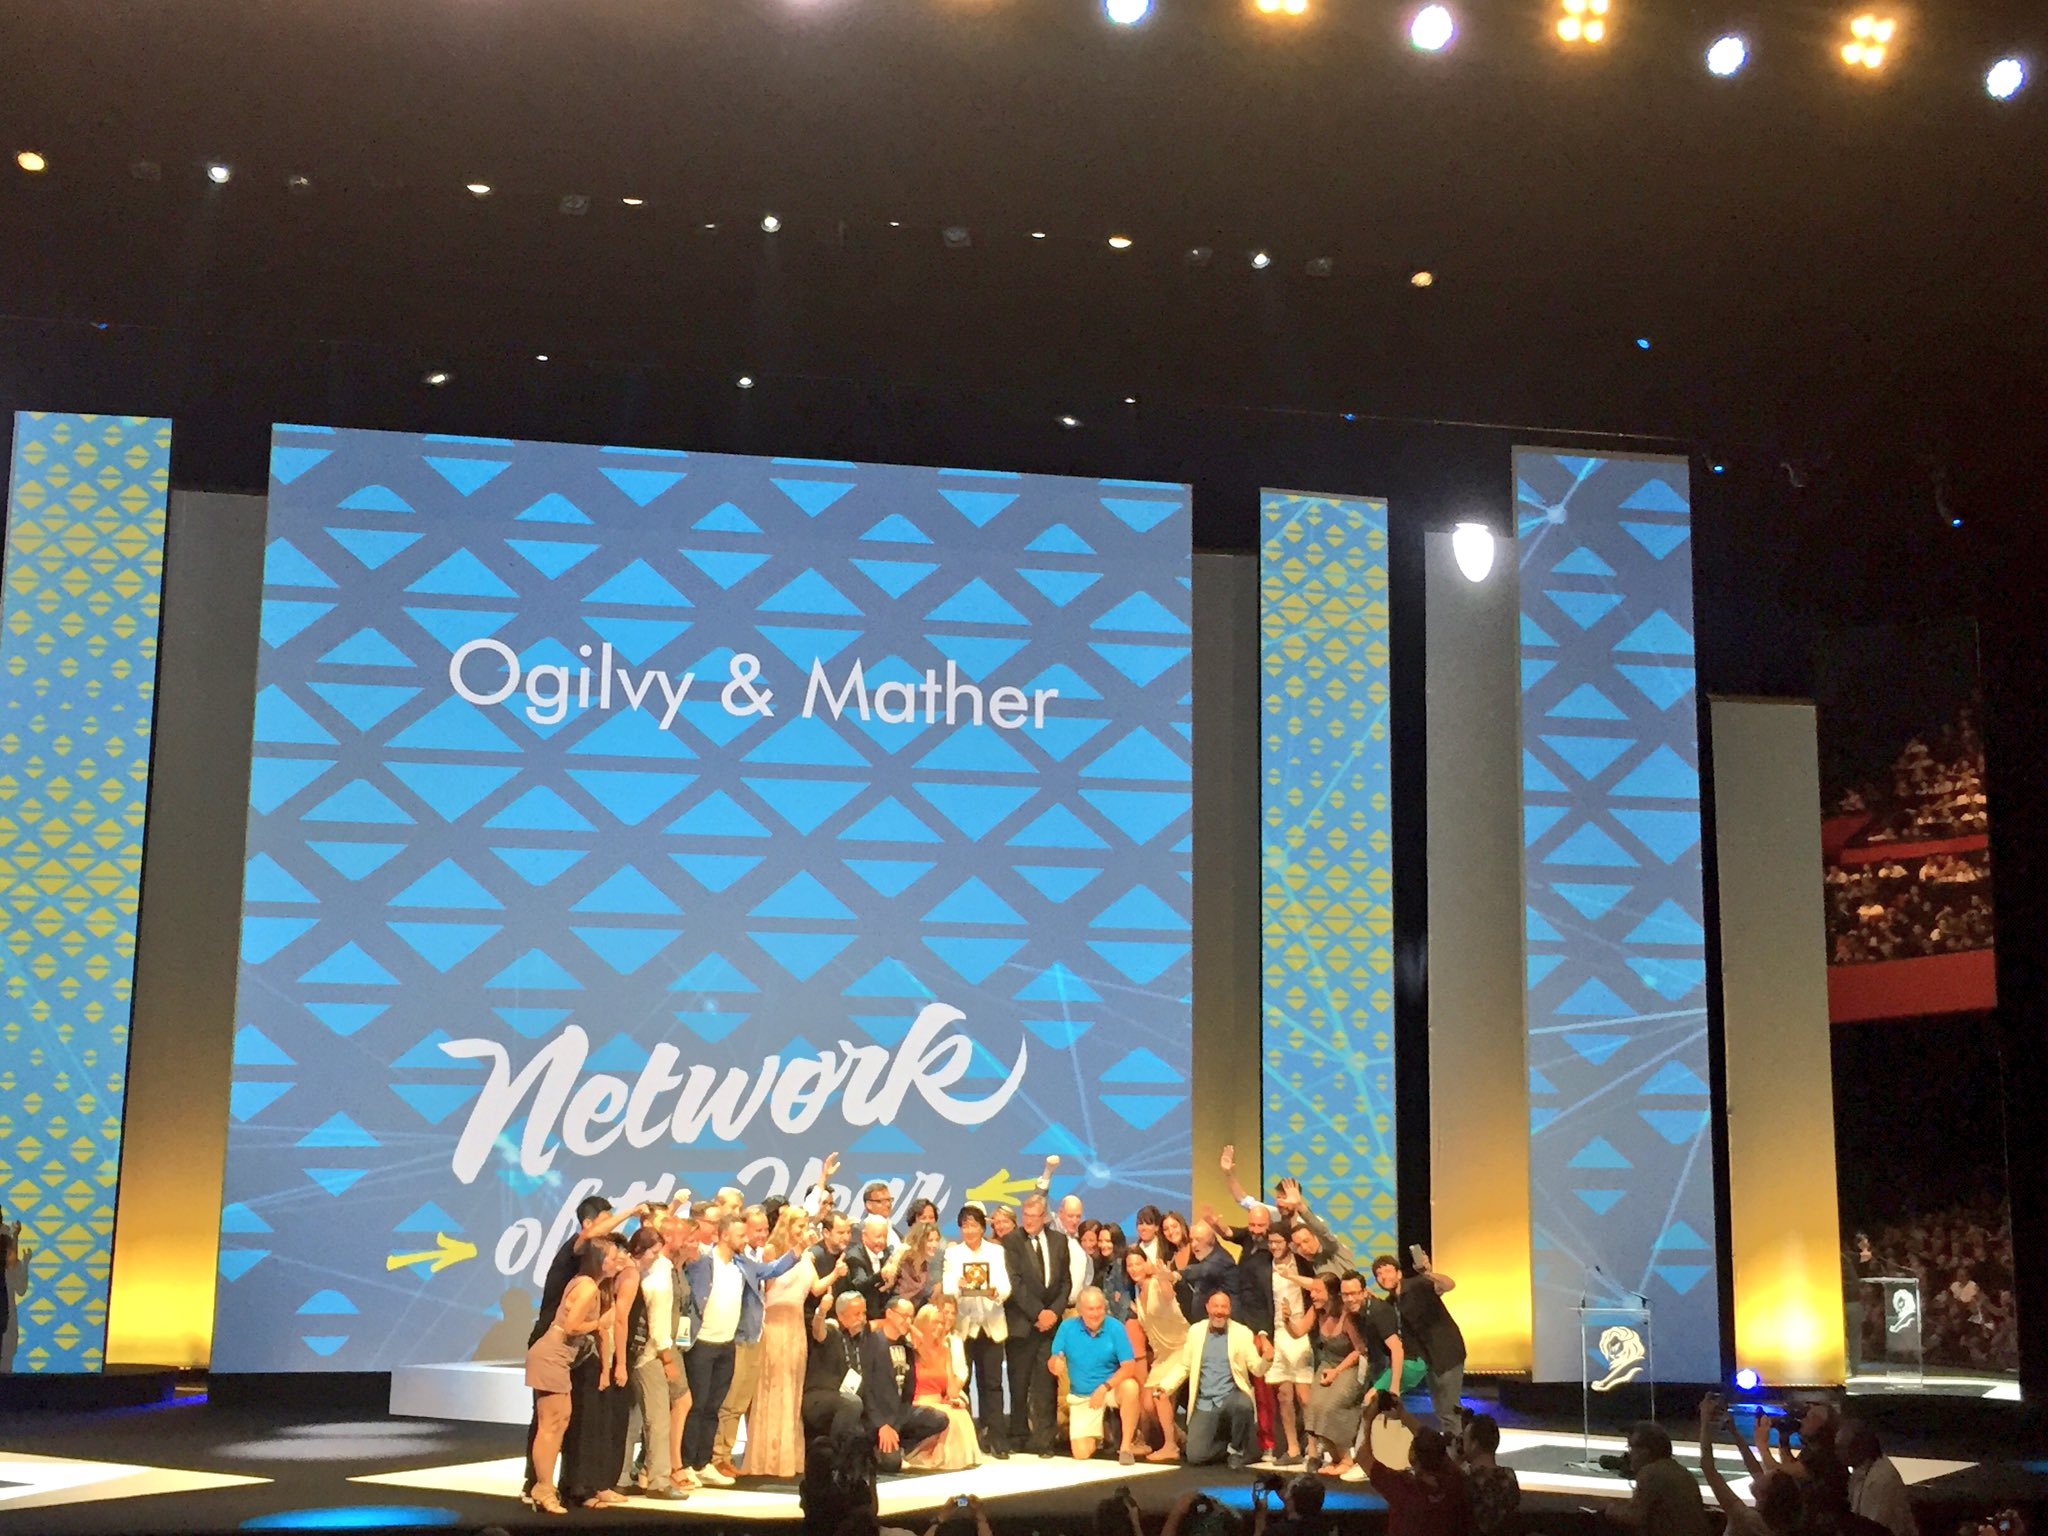 RT @BintaHammerich: Congrats @Ogilvy - Network of the Year #CannesLions https://t.co/7REgyVL4w9